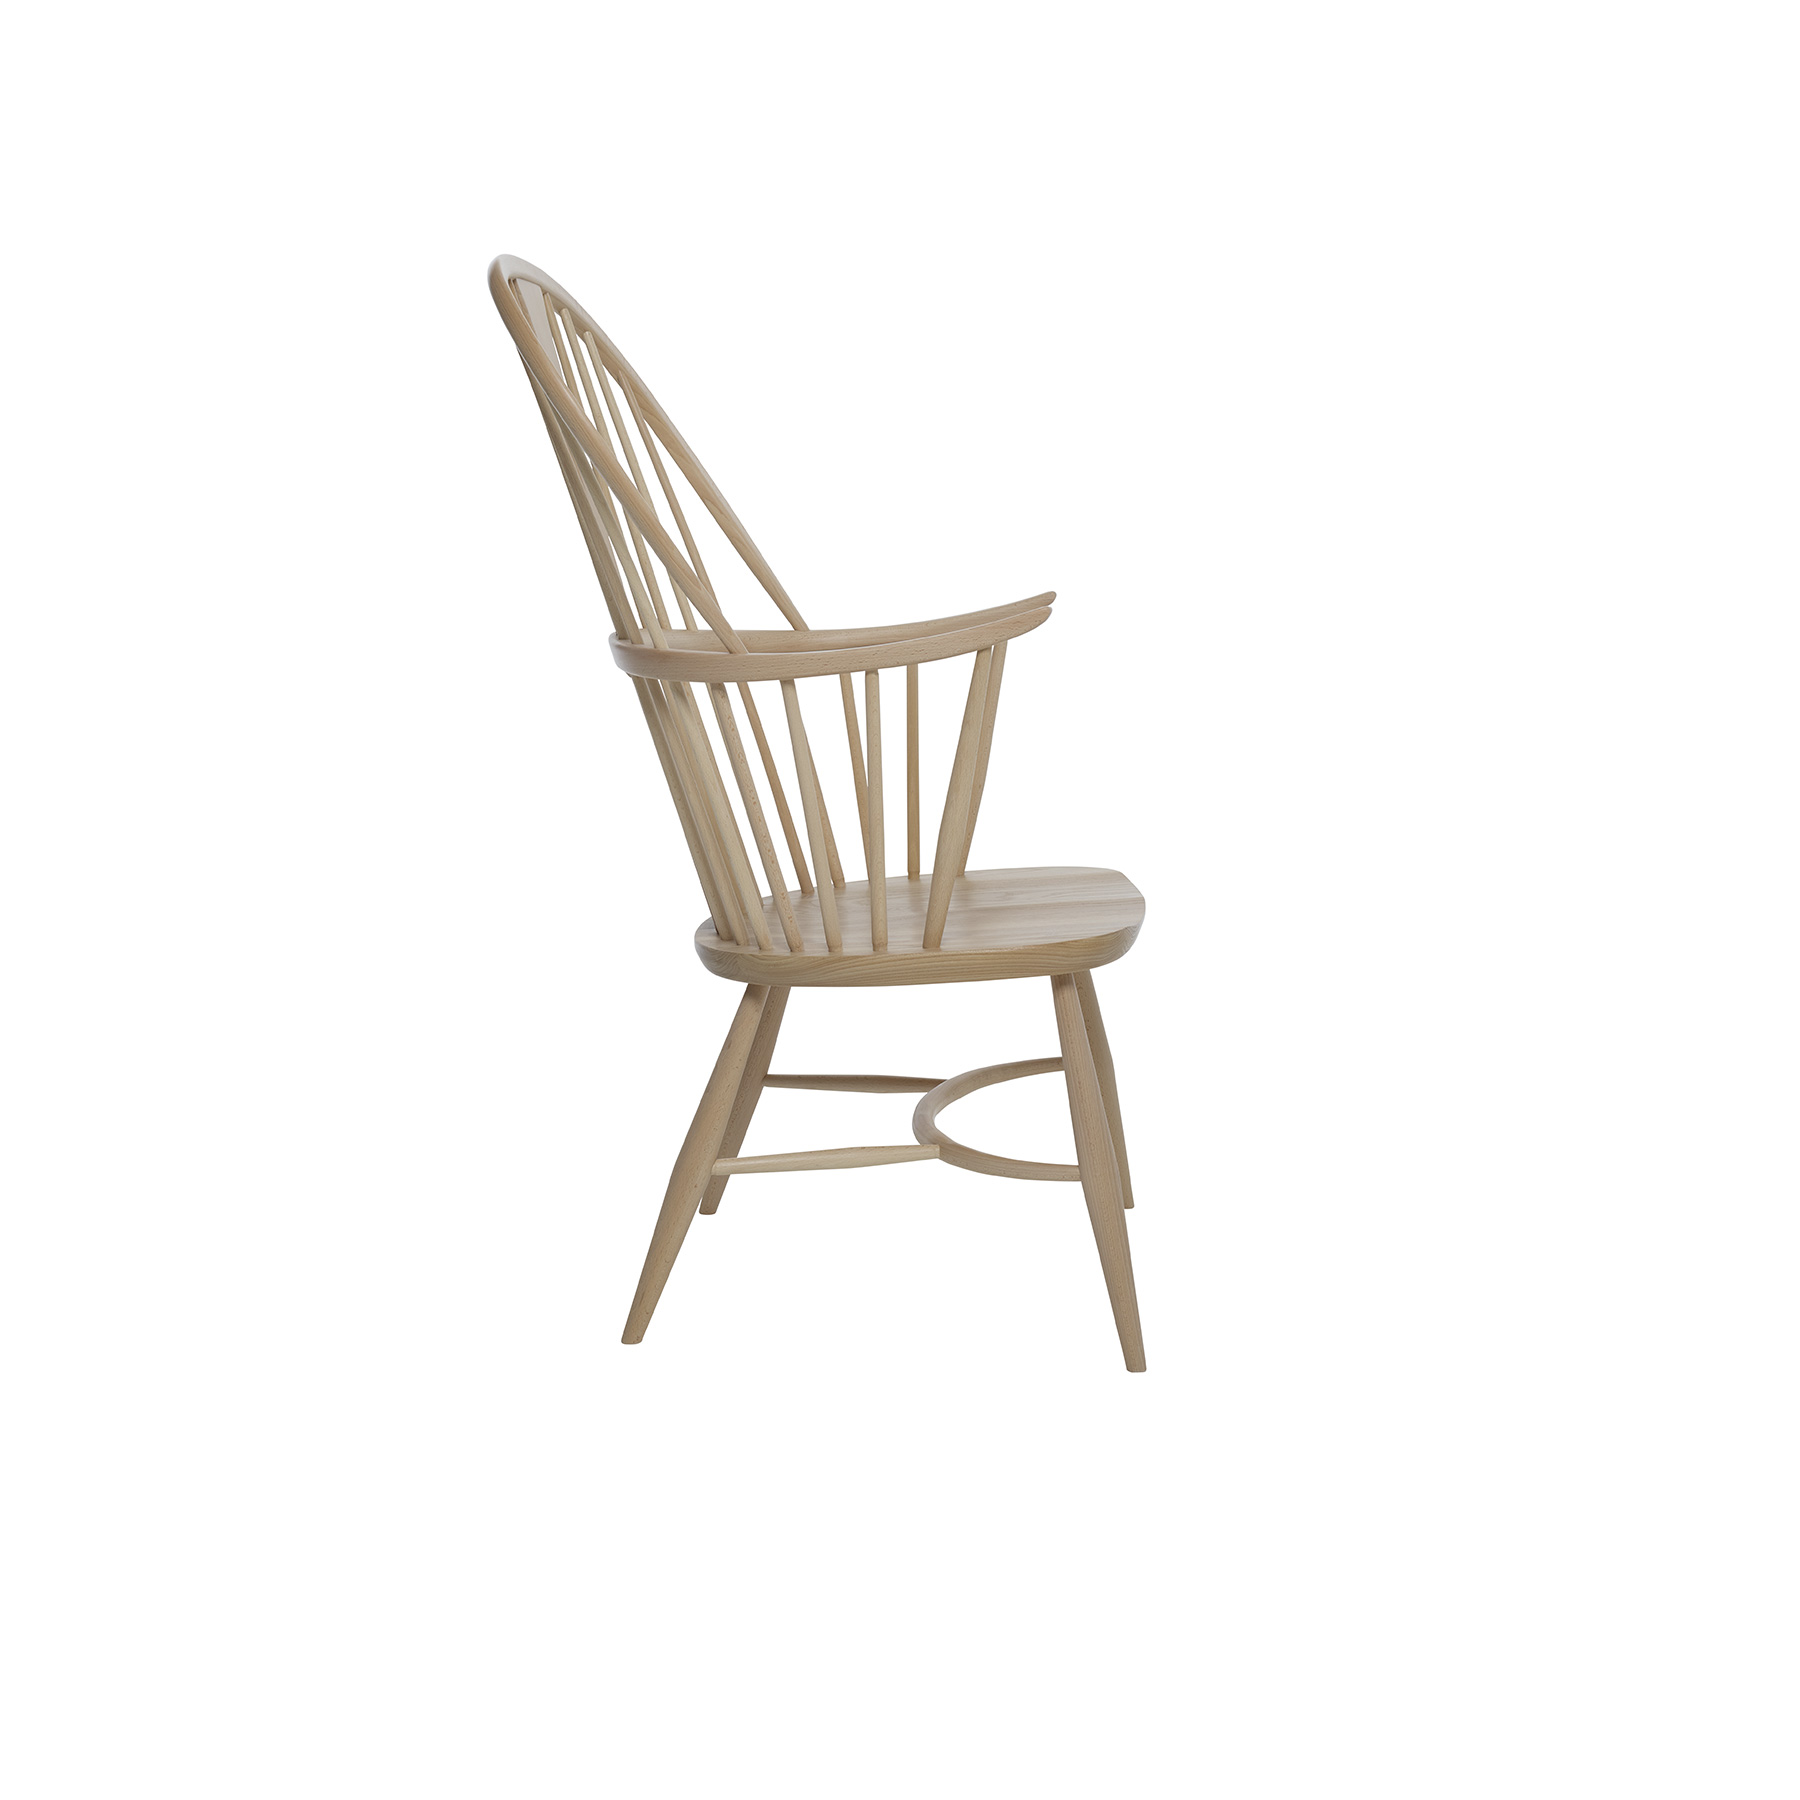 Originals Chairmaker Chair - <p>The Ercol Originals are pieces of timeless and classic design that never date or show their age. It is furniture that is as relevant and as functional now as it was when it was created in the 1950s and 1960s. This furniture was designed by ercol's founder, Lucian Ercolani, who drew for his inspiration on the time proven local design and craft in the Chiltern Hills around where he lived and built his first factory in 1920 in High Wycombe. Using the strength of beech and the beauty of elm he carried this definition on into a huge variety of dining, kitchen, and school chairs and then extended the idiom into the low easy chair range epitomised by the 206 armchair and the studio couch. The beauty of the colour and the grain of the elm took Lucian on to use elm for the tables and cabinets of the Originals and the following Windsor range. The pinnacle of Windsor chair making, the Chairmakers chair is a demonstration of our chair making skills. Four spindles separated by a double bow, and a curved arched back contribute to a supportive sit. The two upward turned armrests supported by three spindles and the solid sculptured seat on this chairmakers chair provide additional comfort. A feature of this dining chair is the classic Windsor wedge joint, where the leg of the chair goes right through the seat; a wedge is then inserted into a cut in the leg, forming a remarkably strong joint.  Sanded off flush with the seat, the joint then provides a beautiful design element. The chair is available in your choice from our lacquer finishes which both protect the timber and allow the beauty of the natural grain to show through.  Alternatively you can chose from our range of paint finishes to give your room a pop of colour.</p>    Matter of Stuff